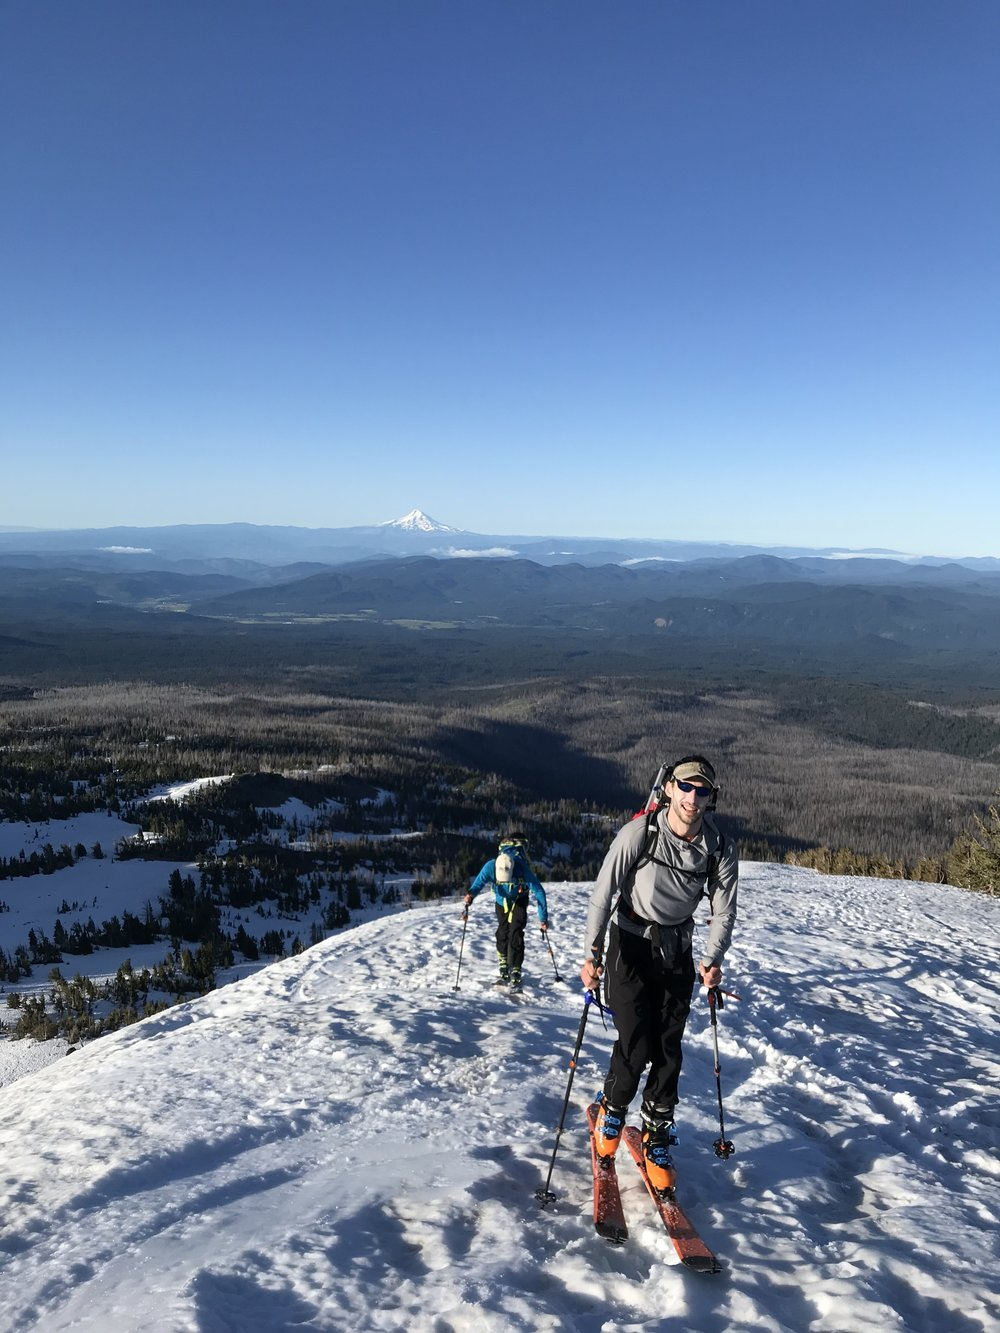 Above the trees, mt. Hood watching -